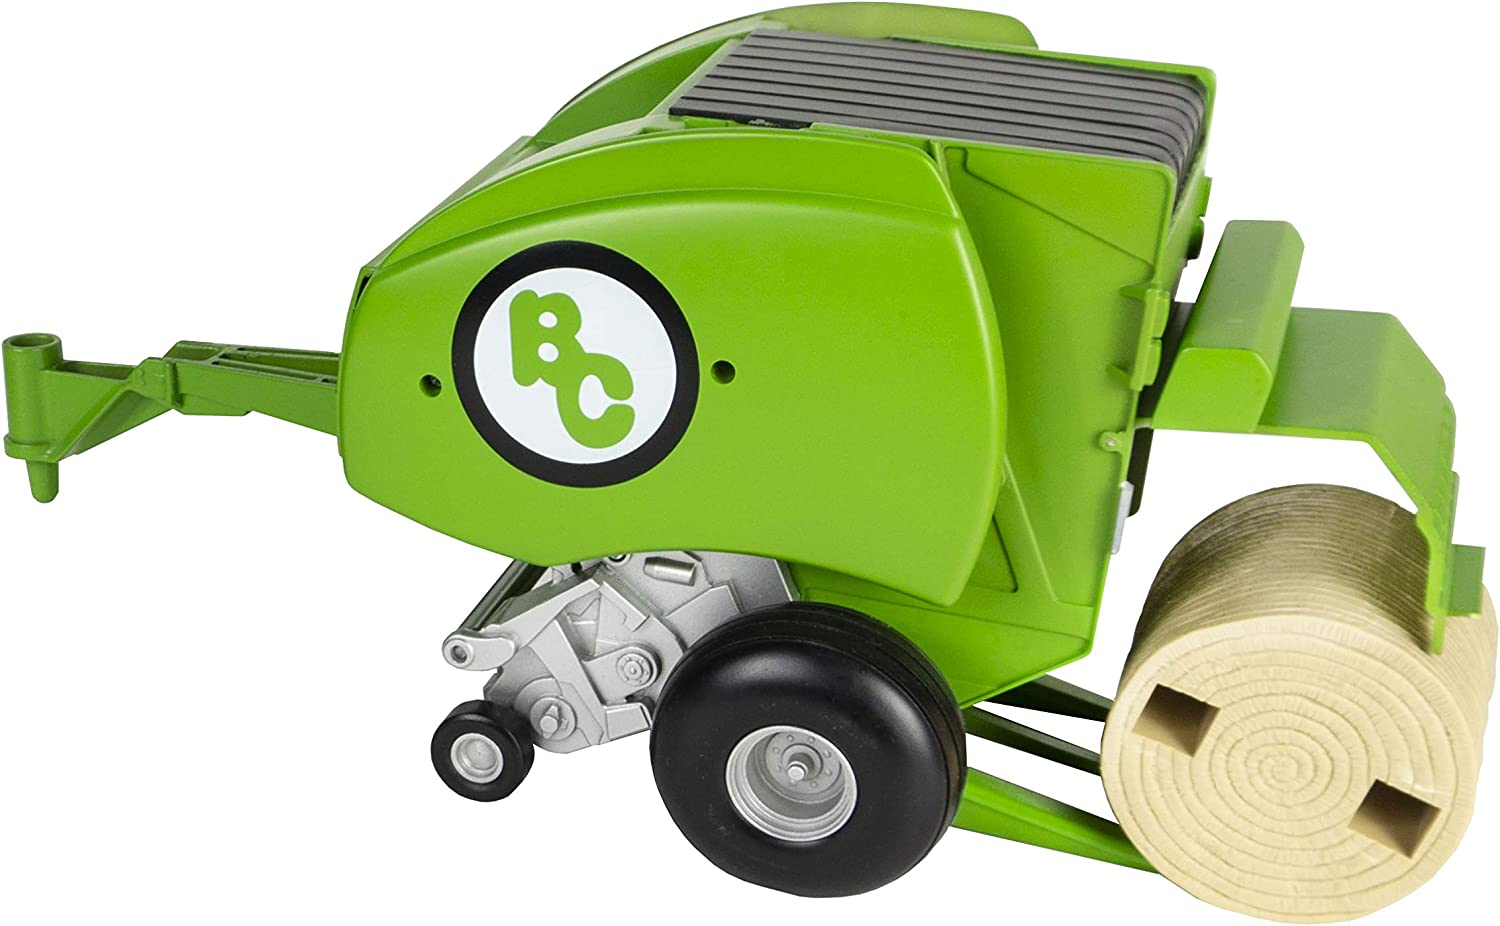 Durable /& Lifelike Proprietary Blend of Plastic Farm Toys Big Country Toys Round Baler Toy Hay Baler 1:20 Scale Playable /& Collectible